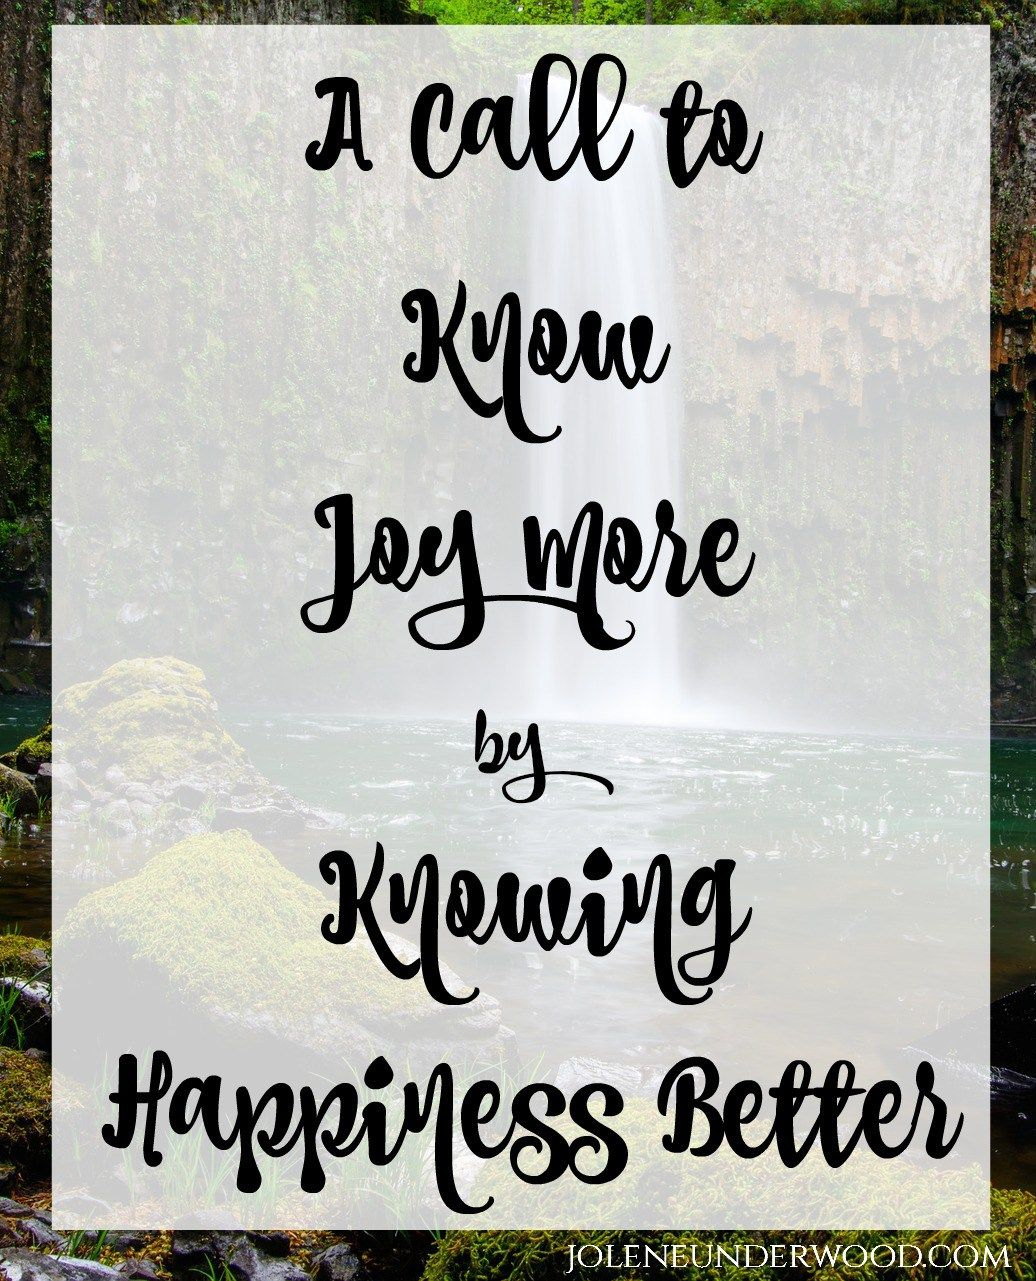 A Call to Know Joy More by Knowing Happiness Better #thehappinessdare #faith